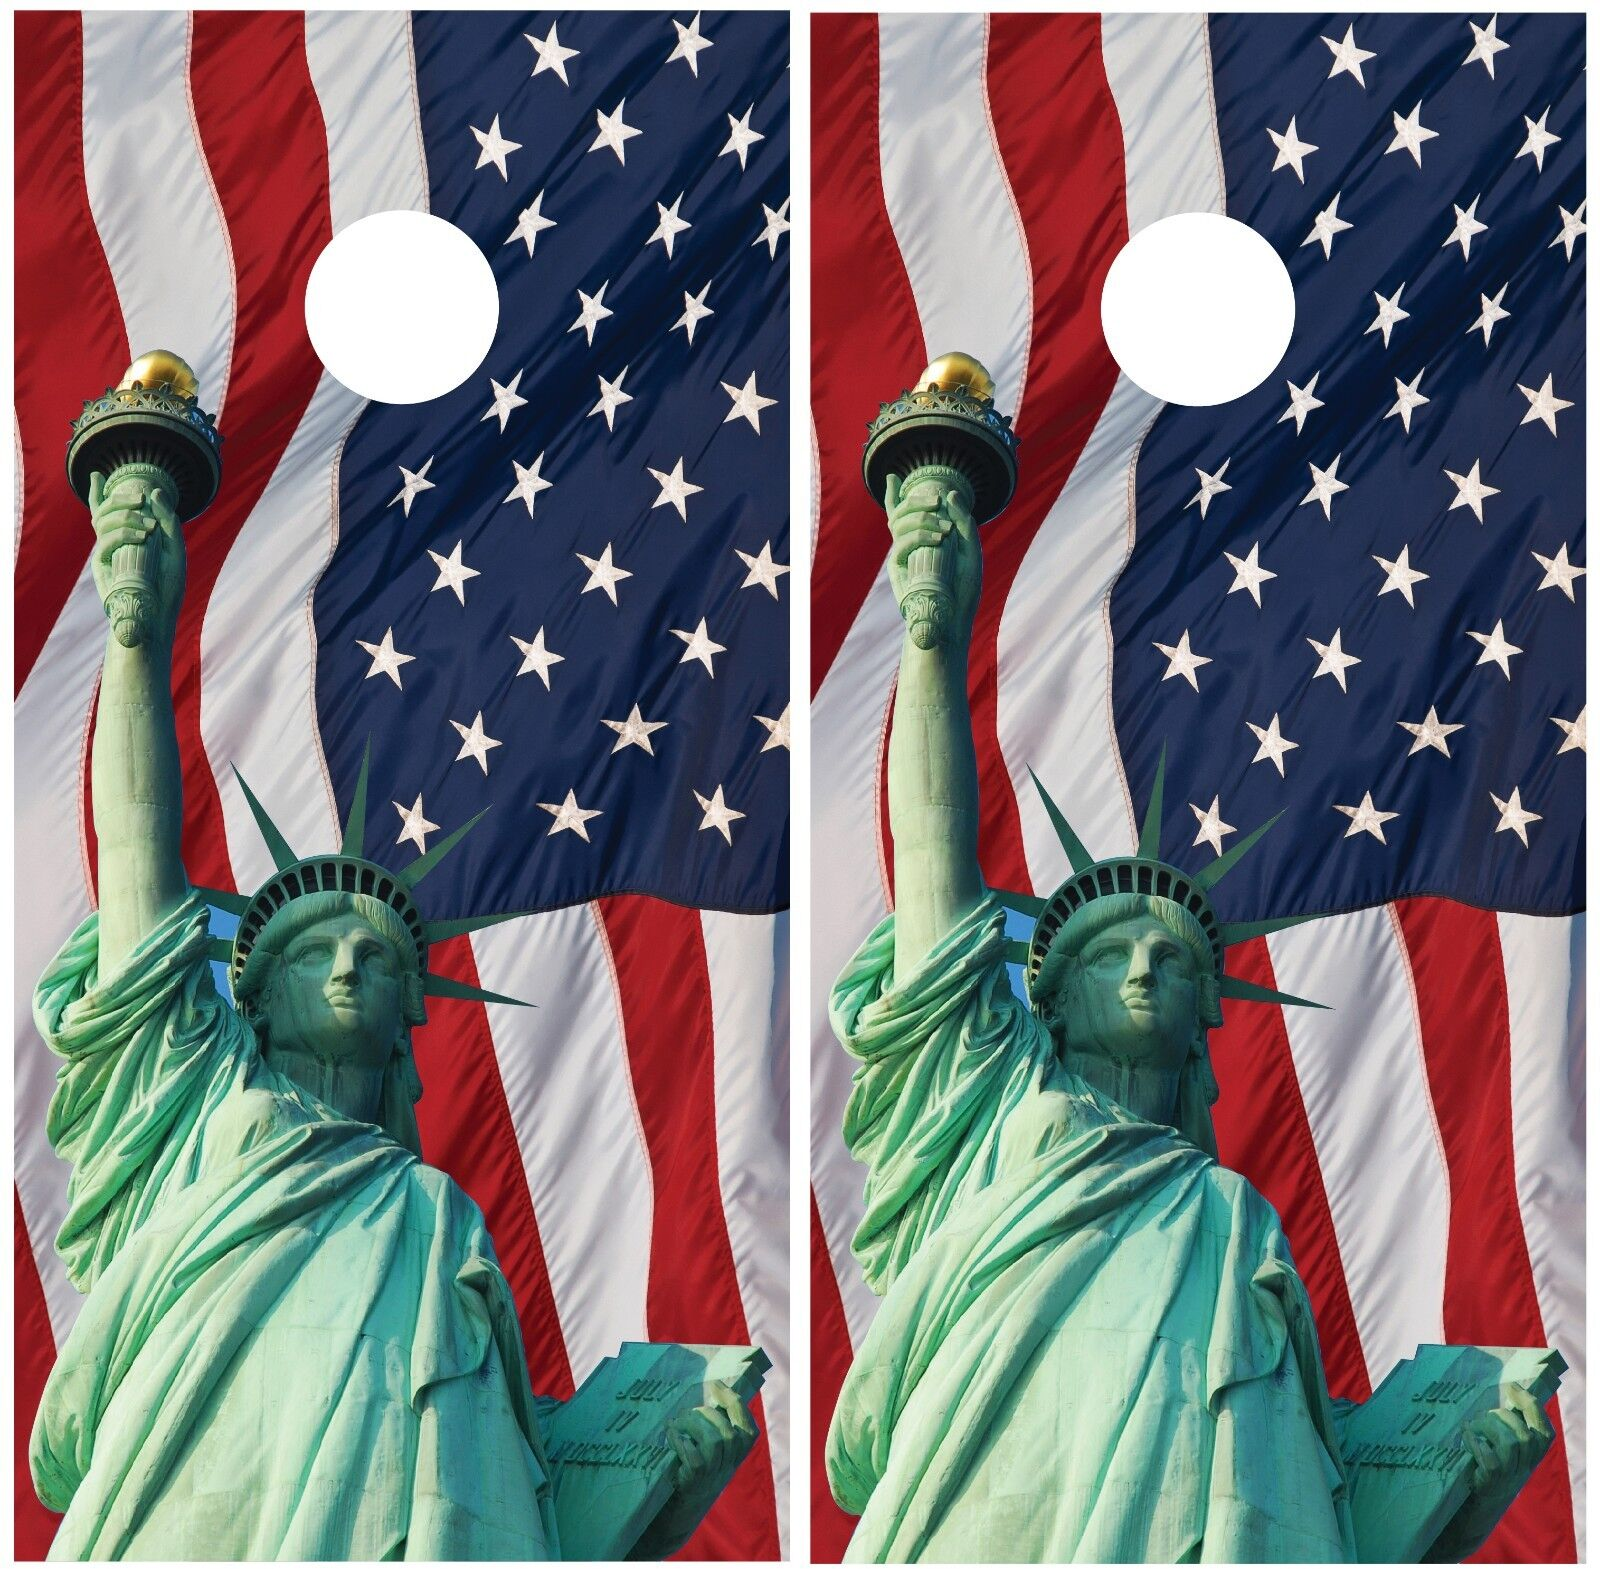 Statue of Liberty  American Flag Cornhole Board Decal Wrap Wraps  looking for sales agent